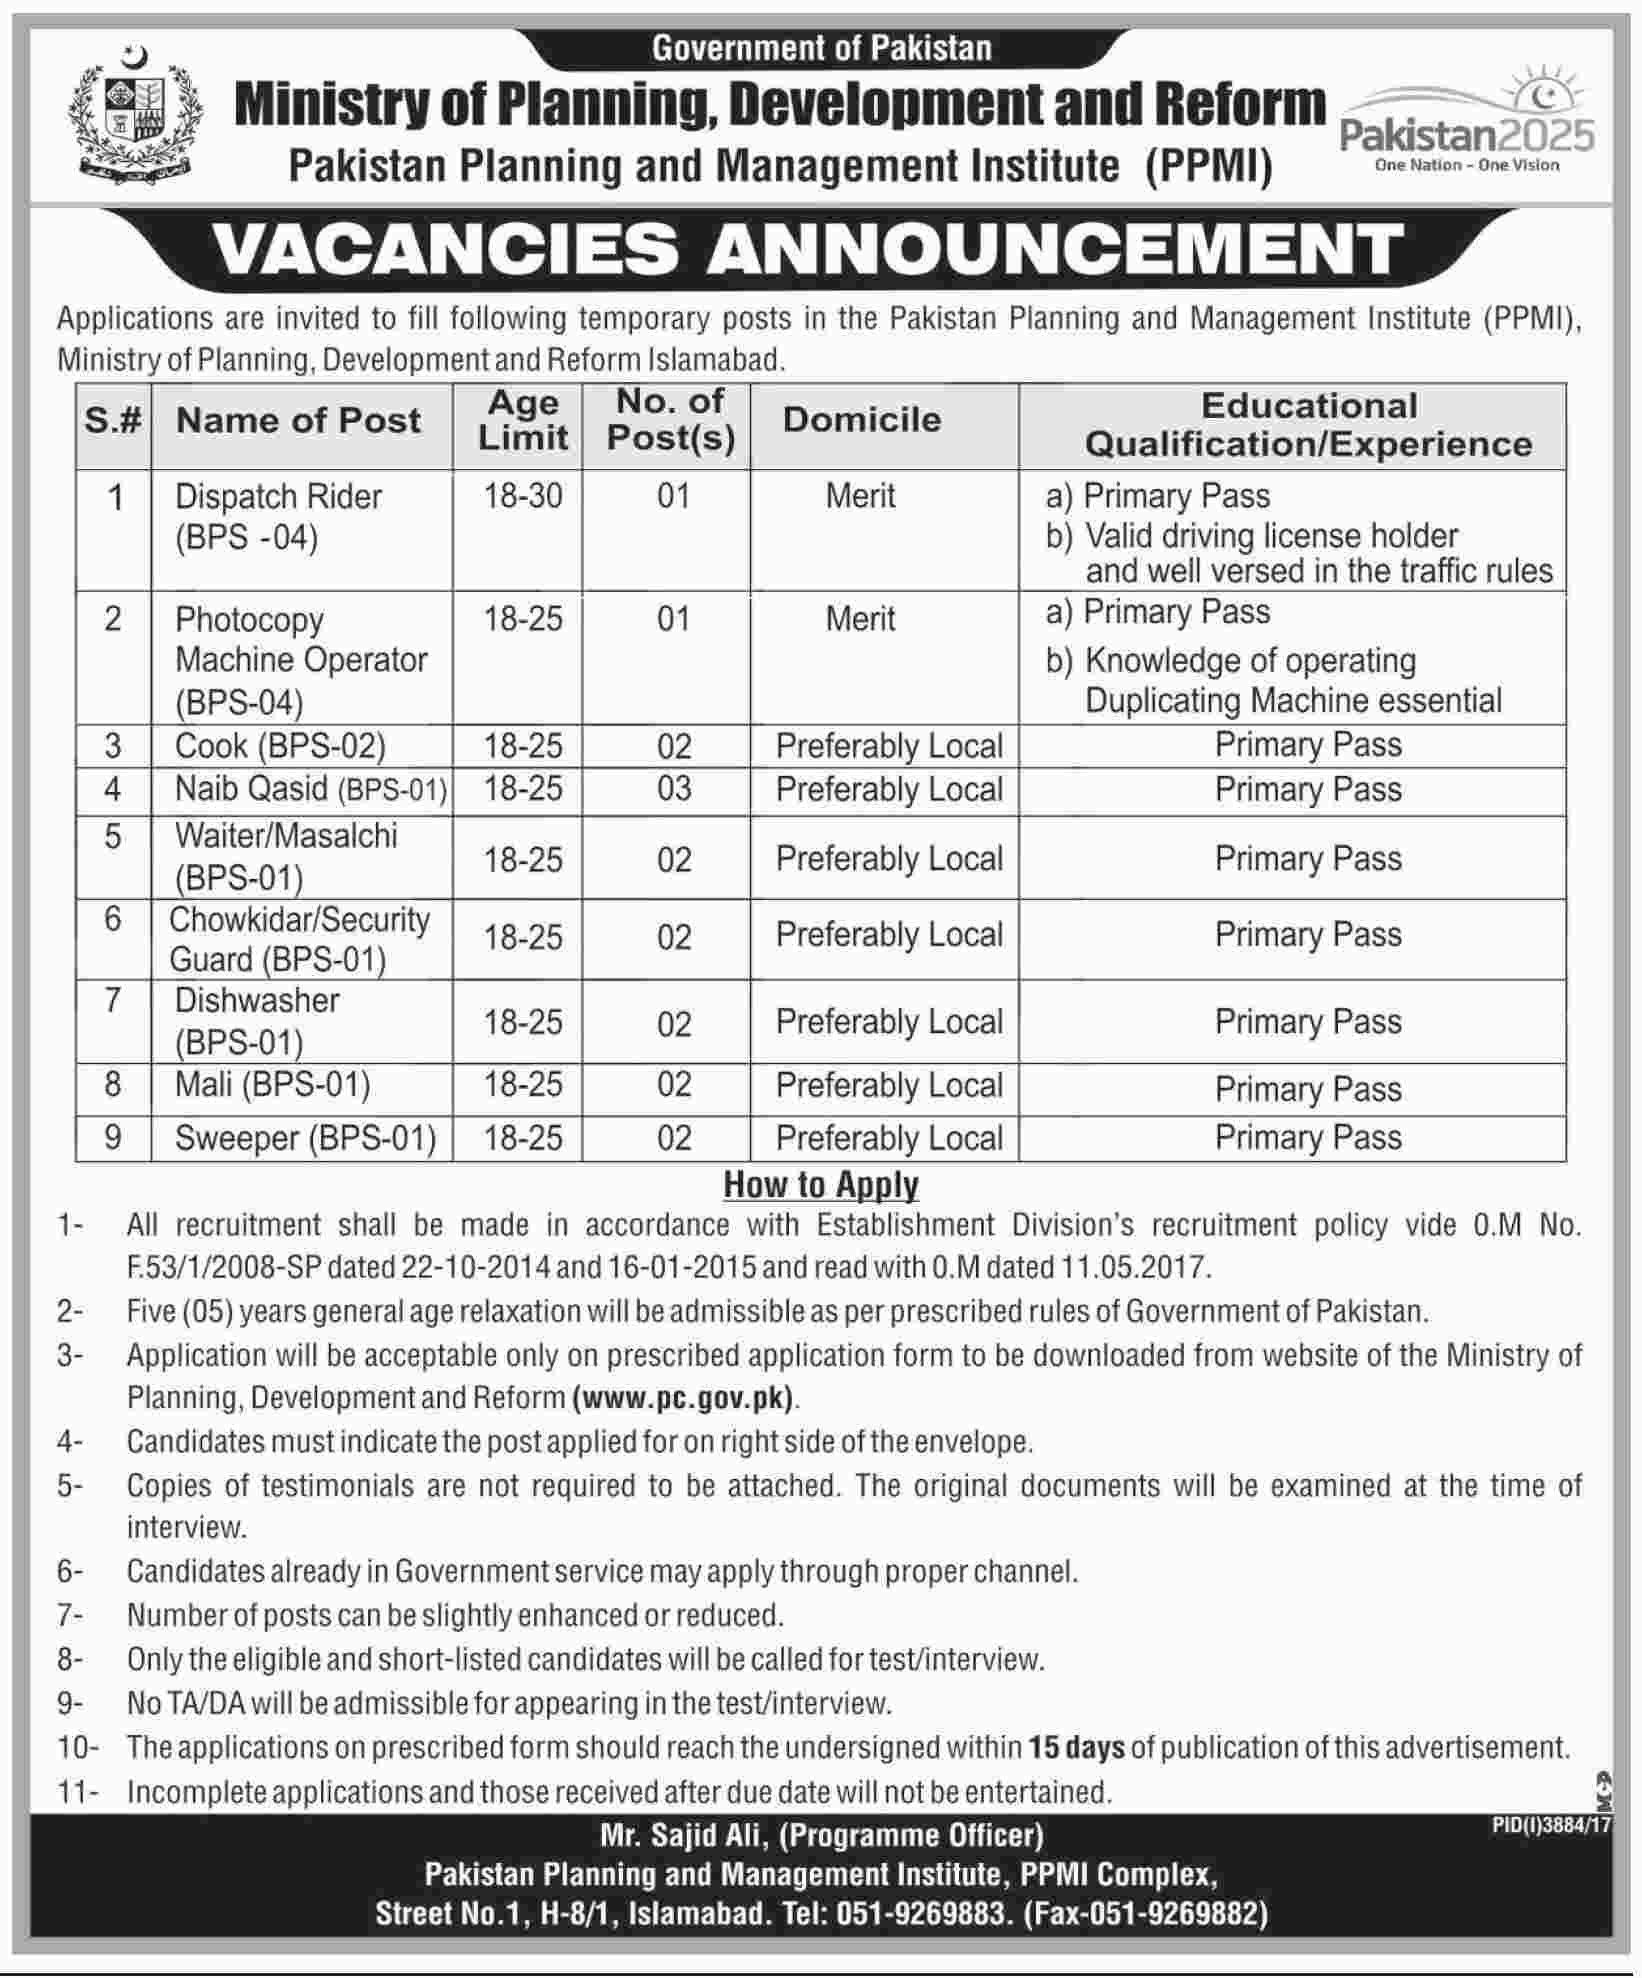 Islamabad, Ministry of Planning, Development and Reform 17 Jobs, 21 January 2018 Daily Jang Newspaper.